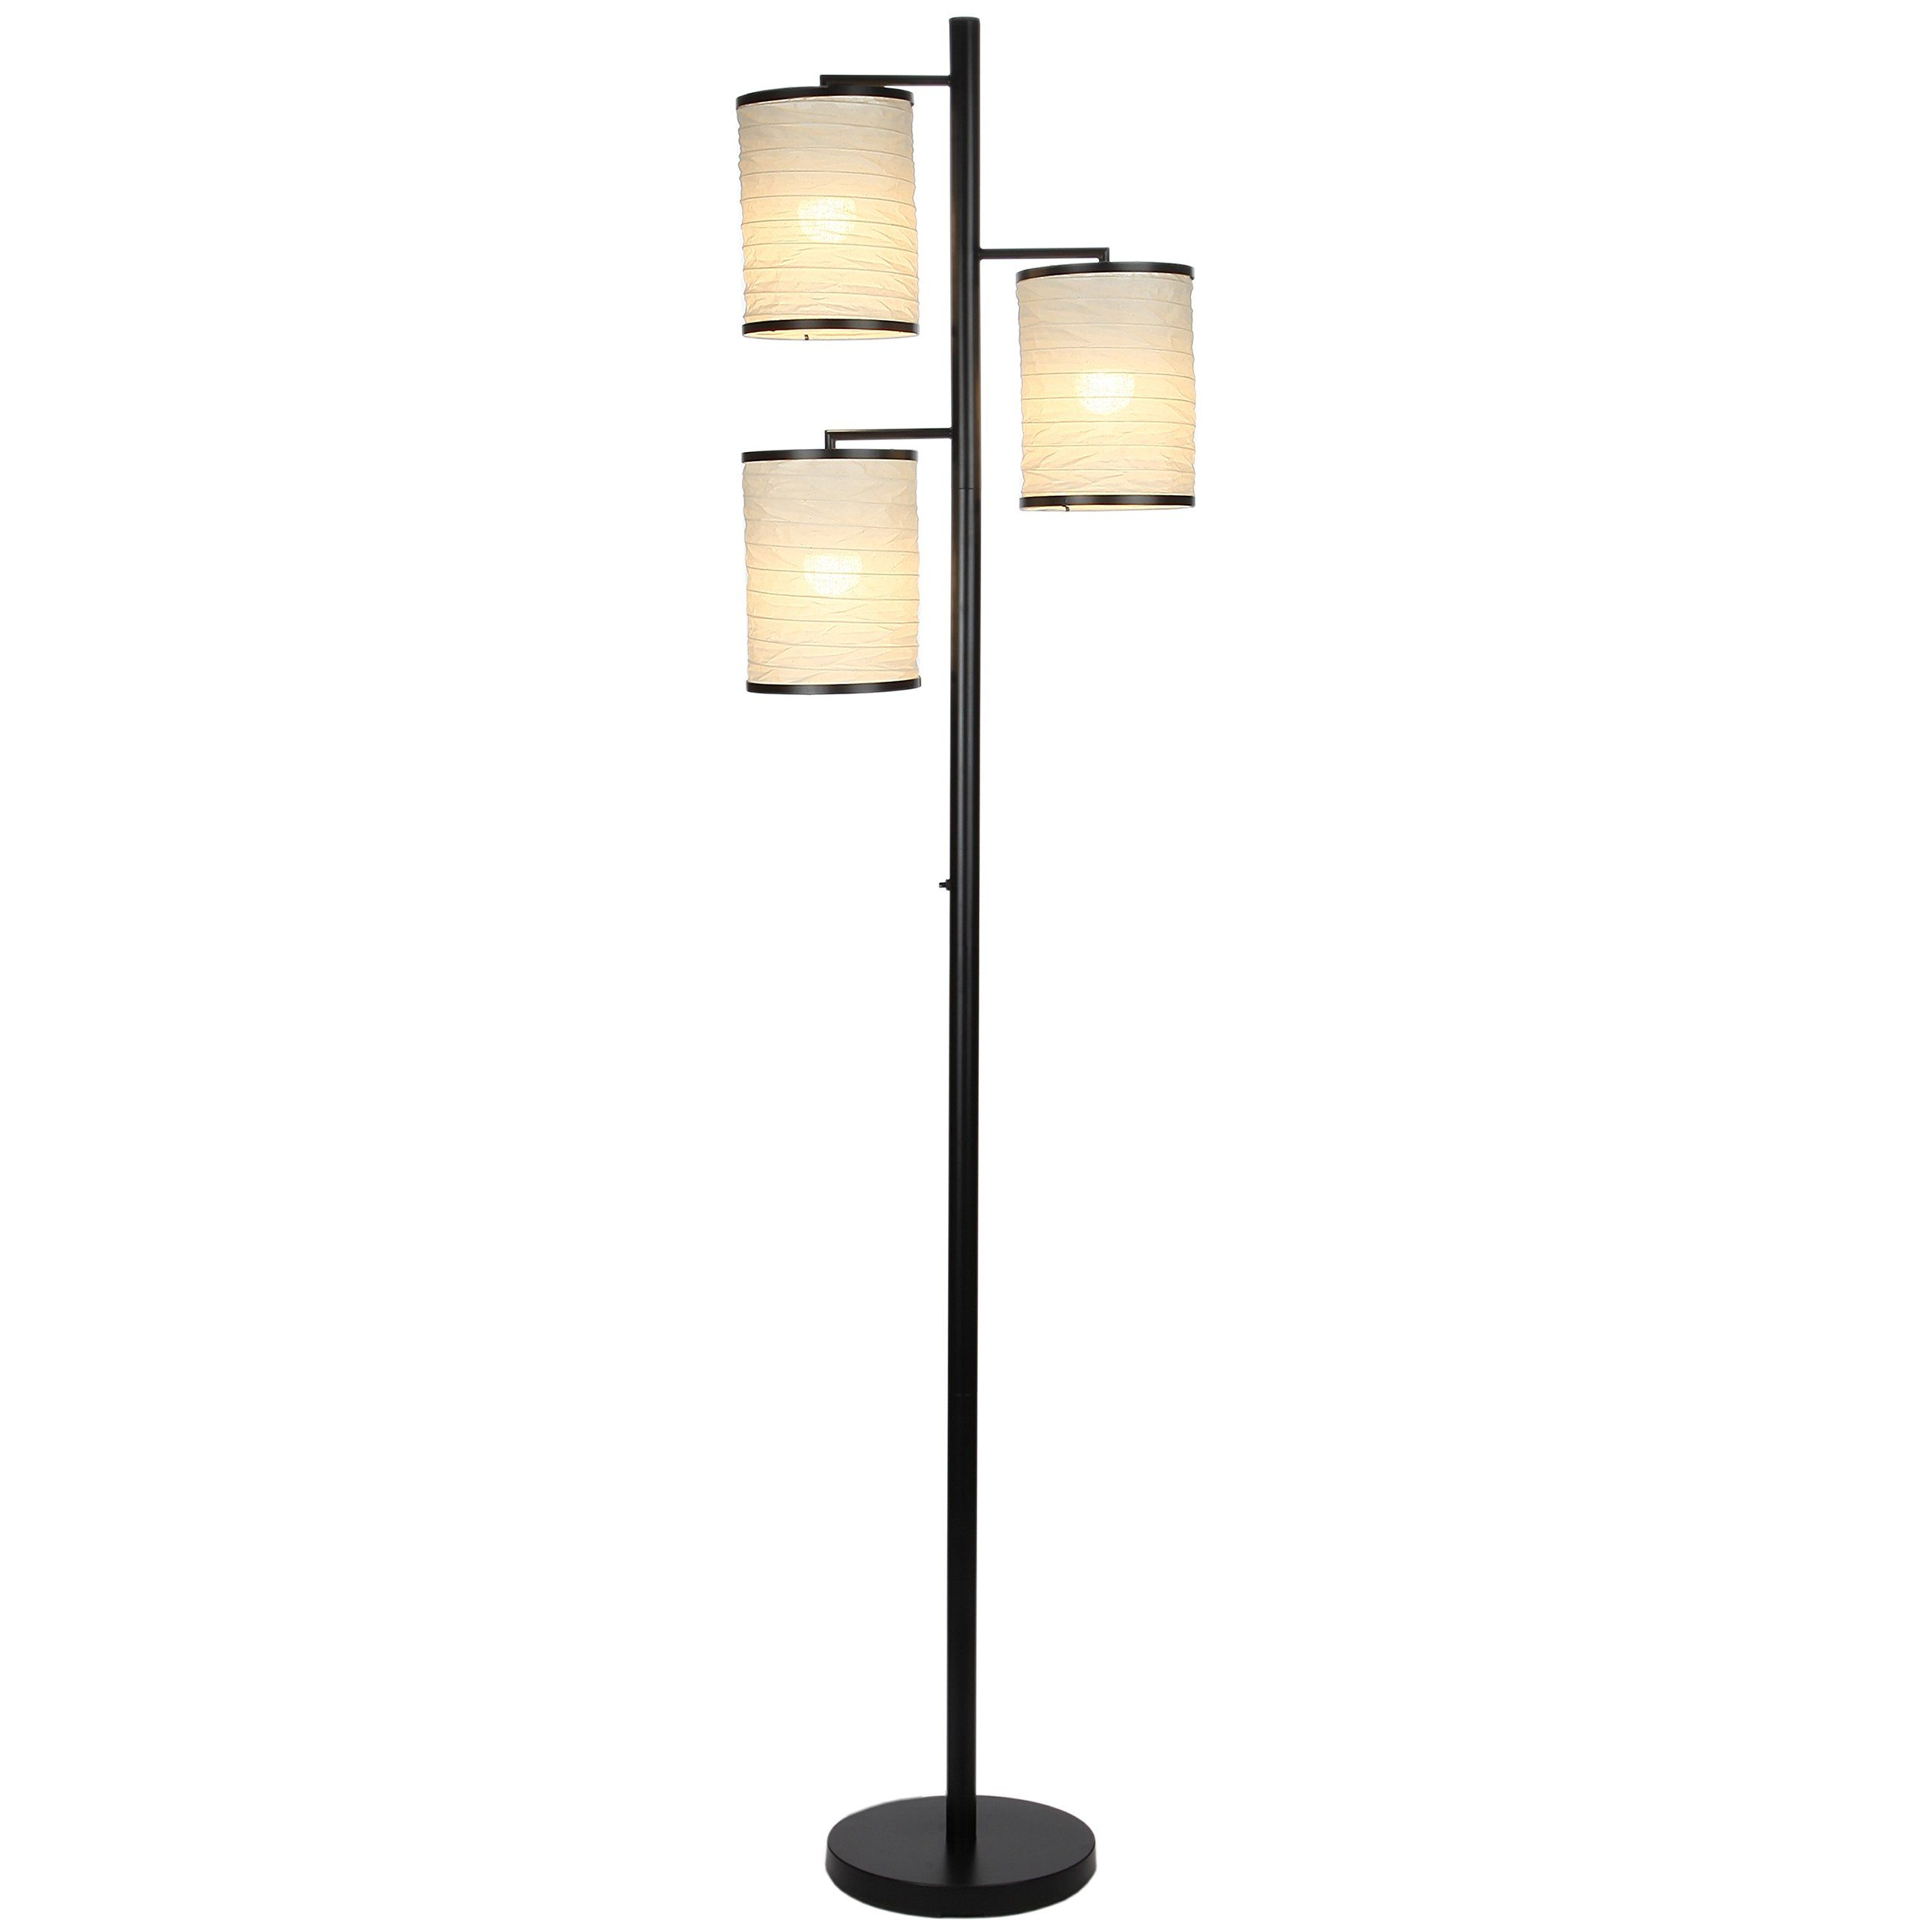 3 Light Floor Lamp Brightech Liam Led Floor Lamp  Classy And Stylish 3 Light Led Tree